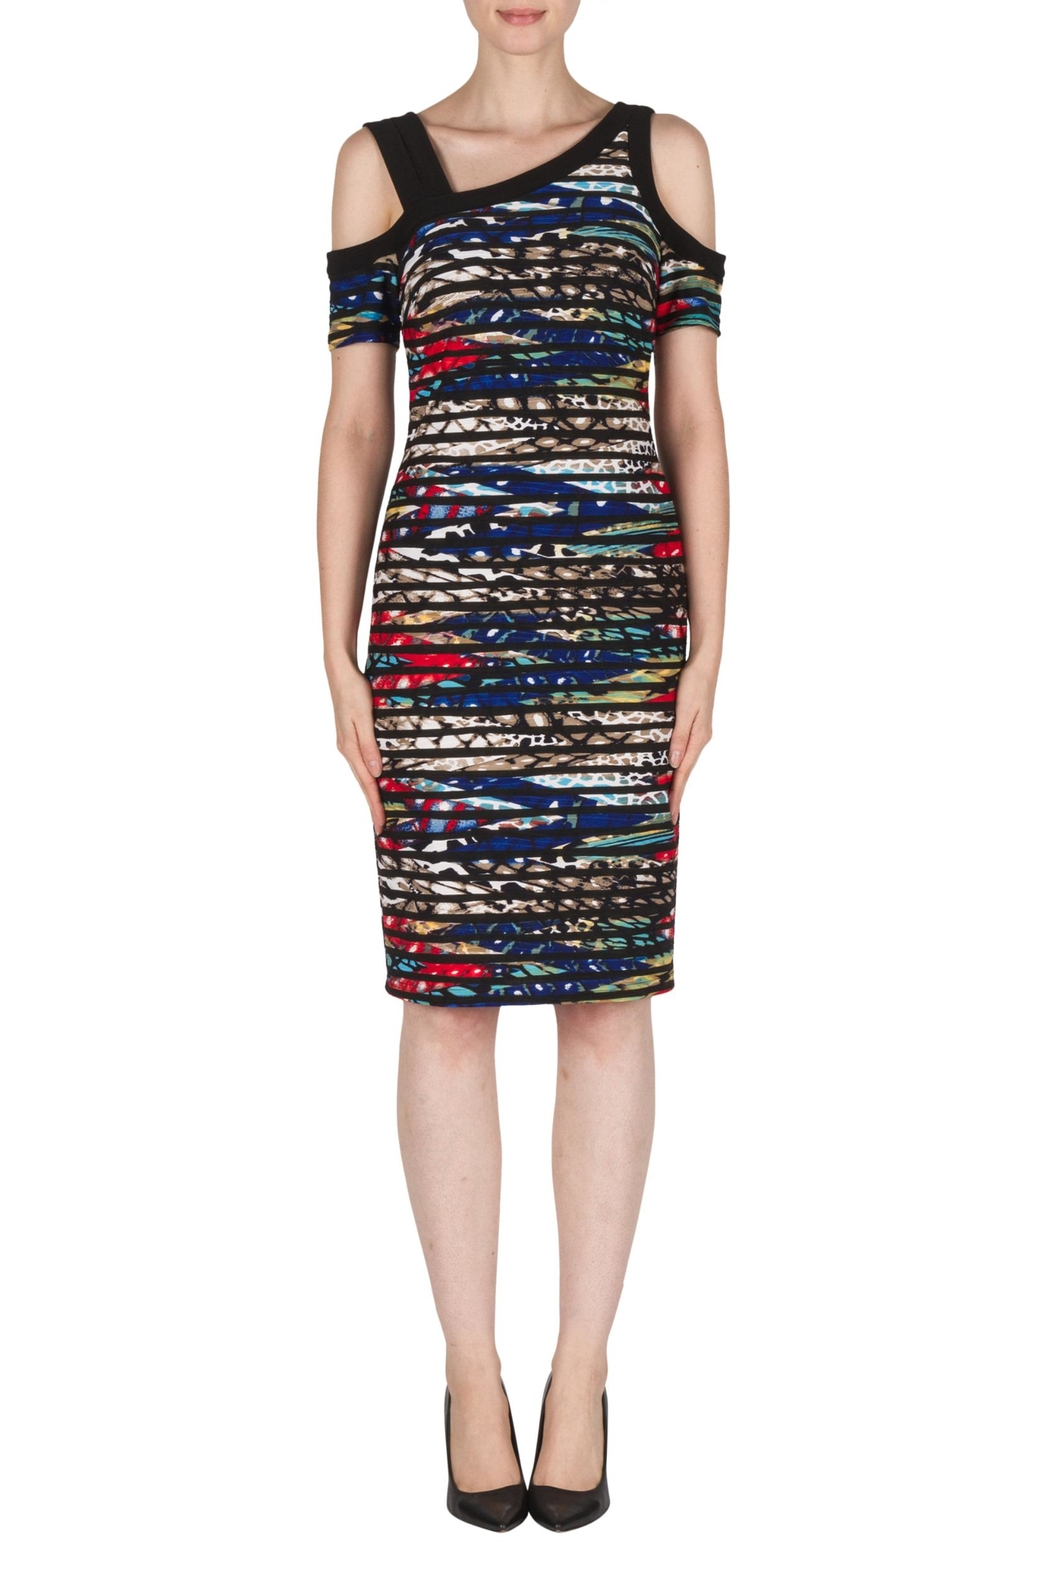 Joseph Ribkoff Kristin Multi-Colored Dress - Main Image